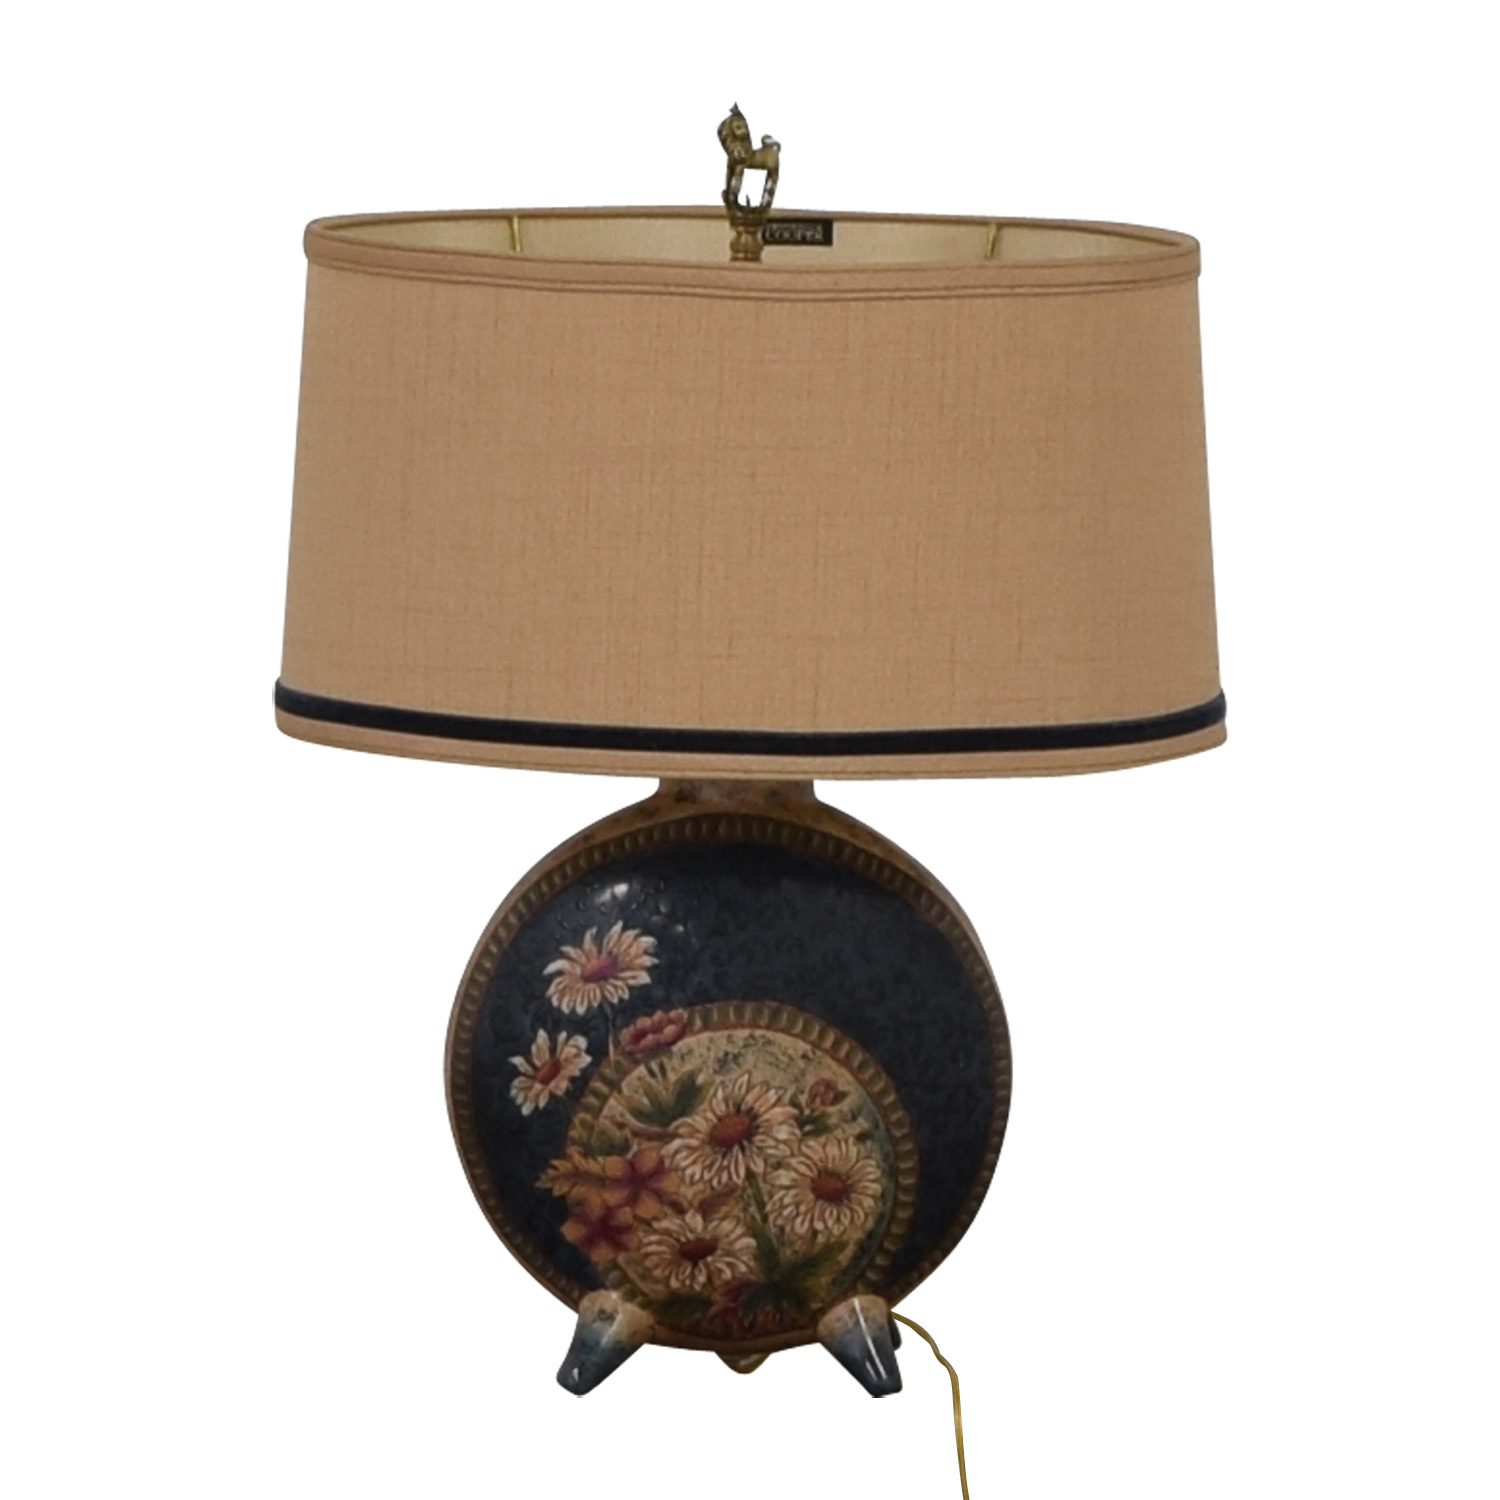 Frederick Cooper Frederick Cooper Lamp discount